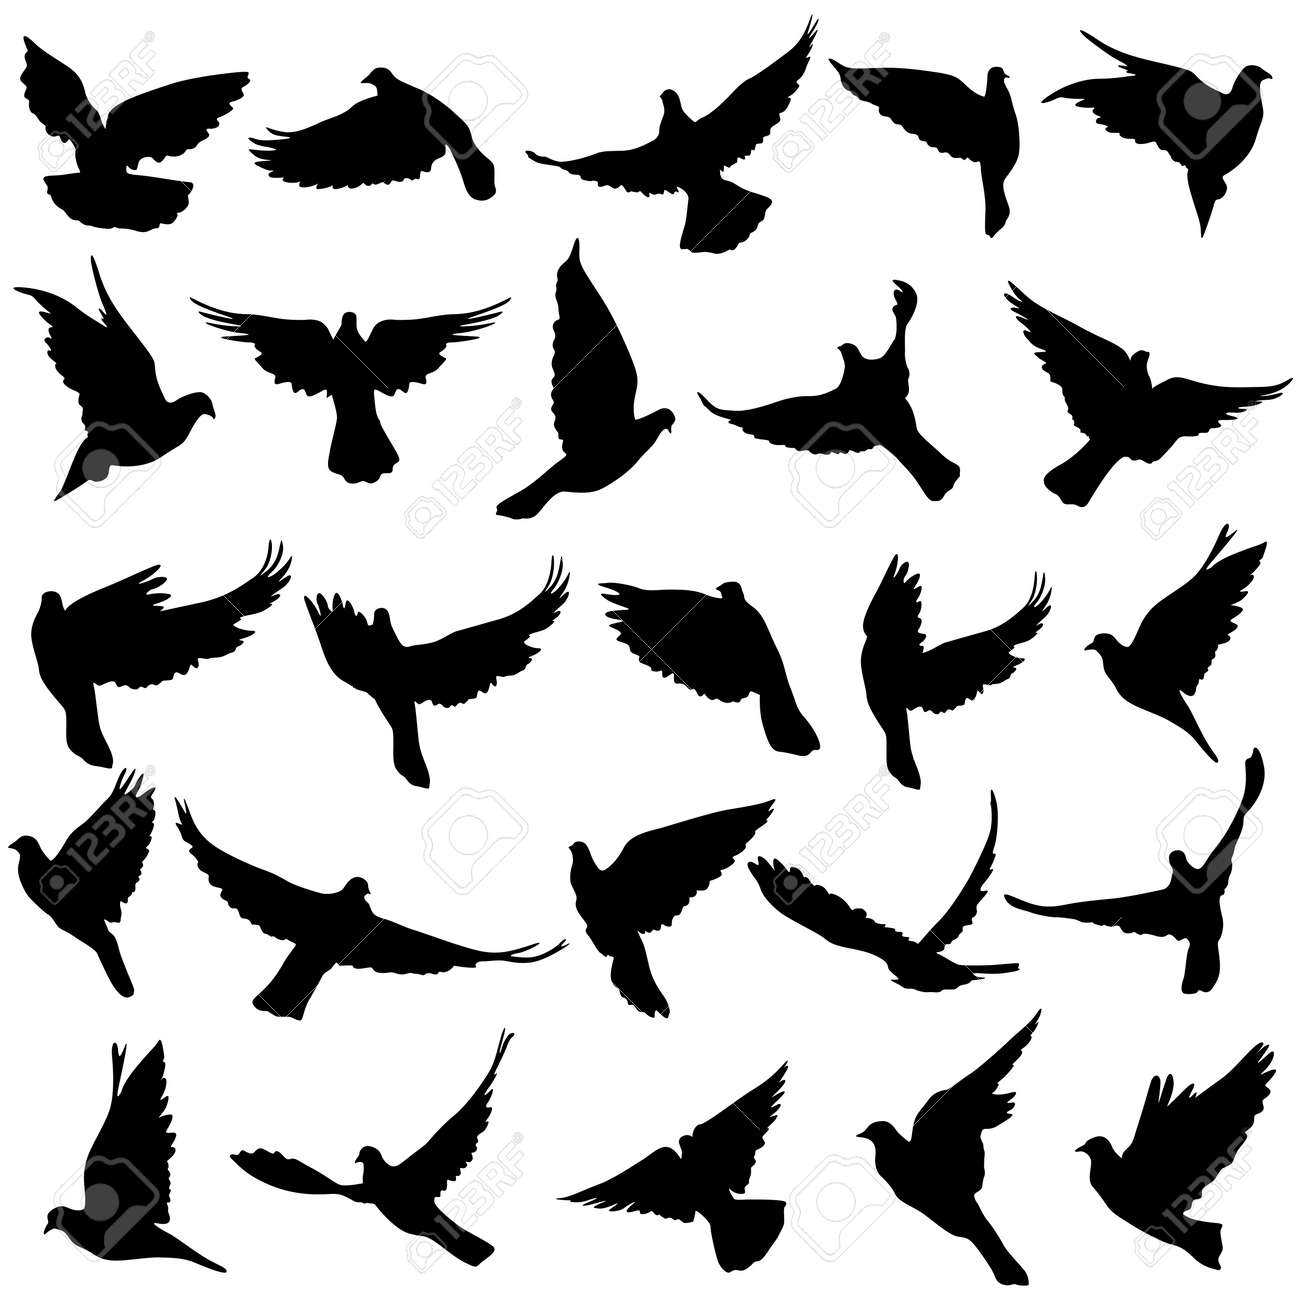 Set of silhouettes of doves - 29642055